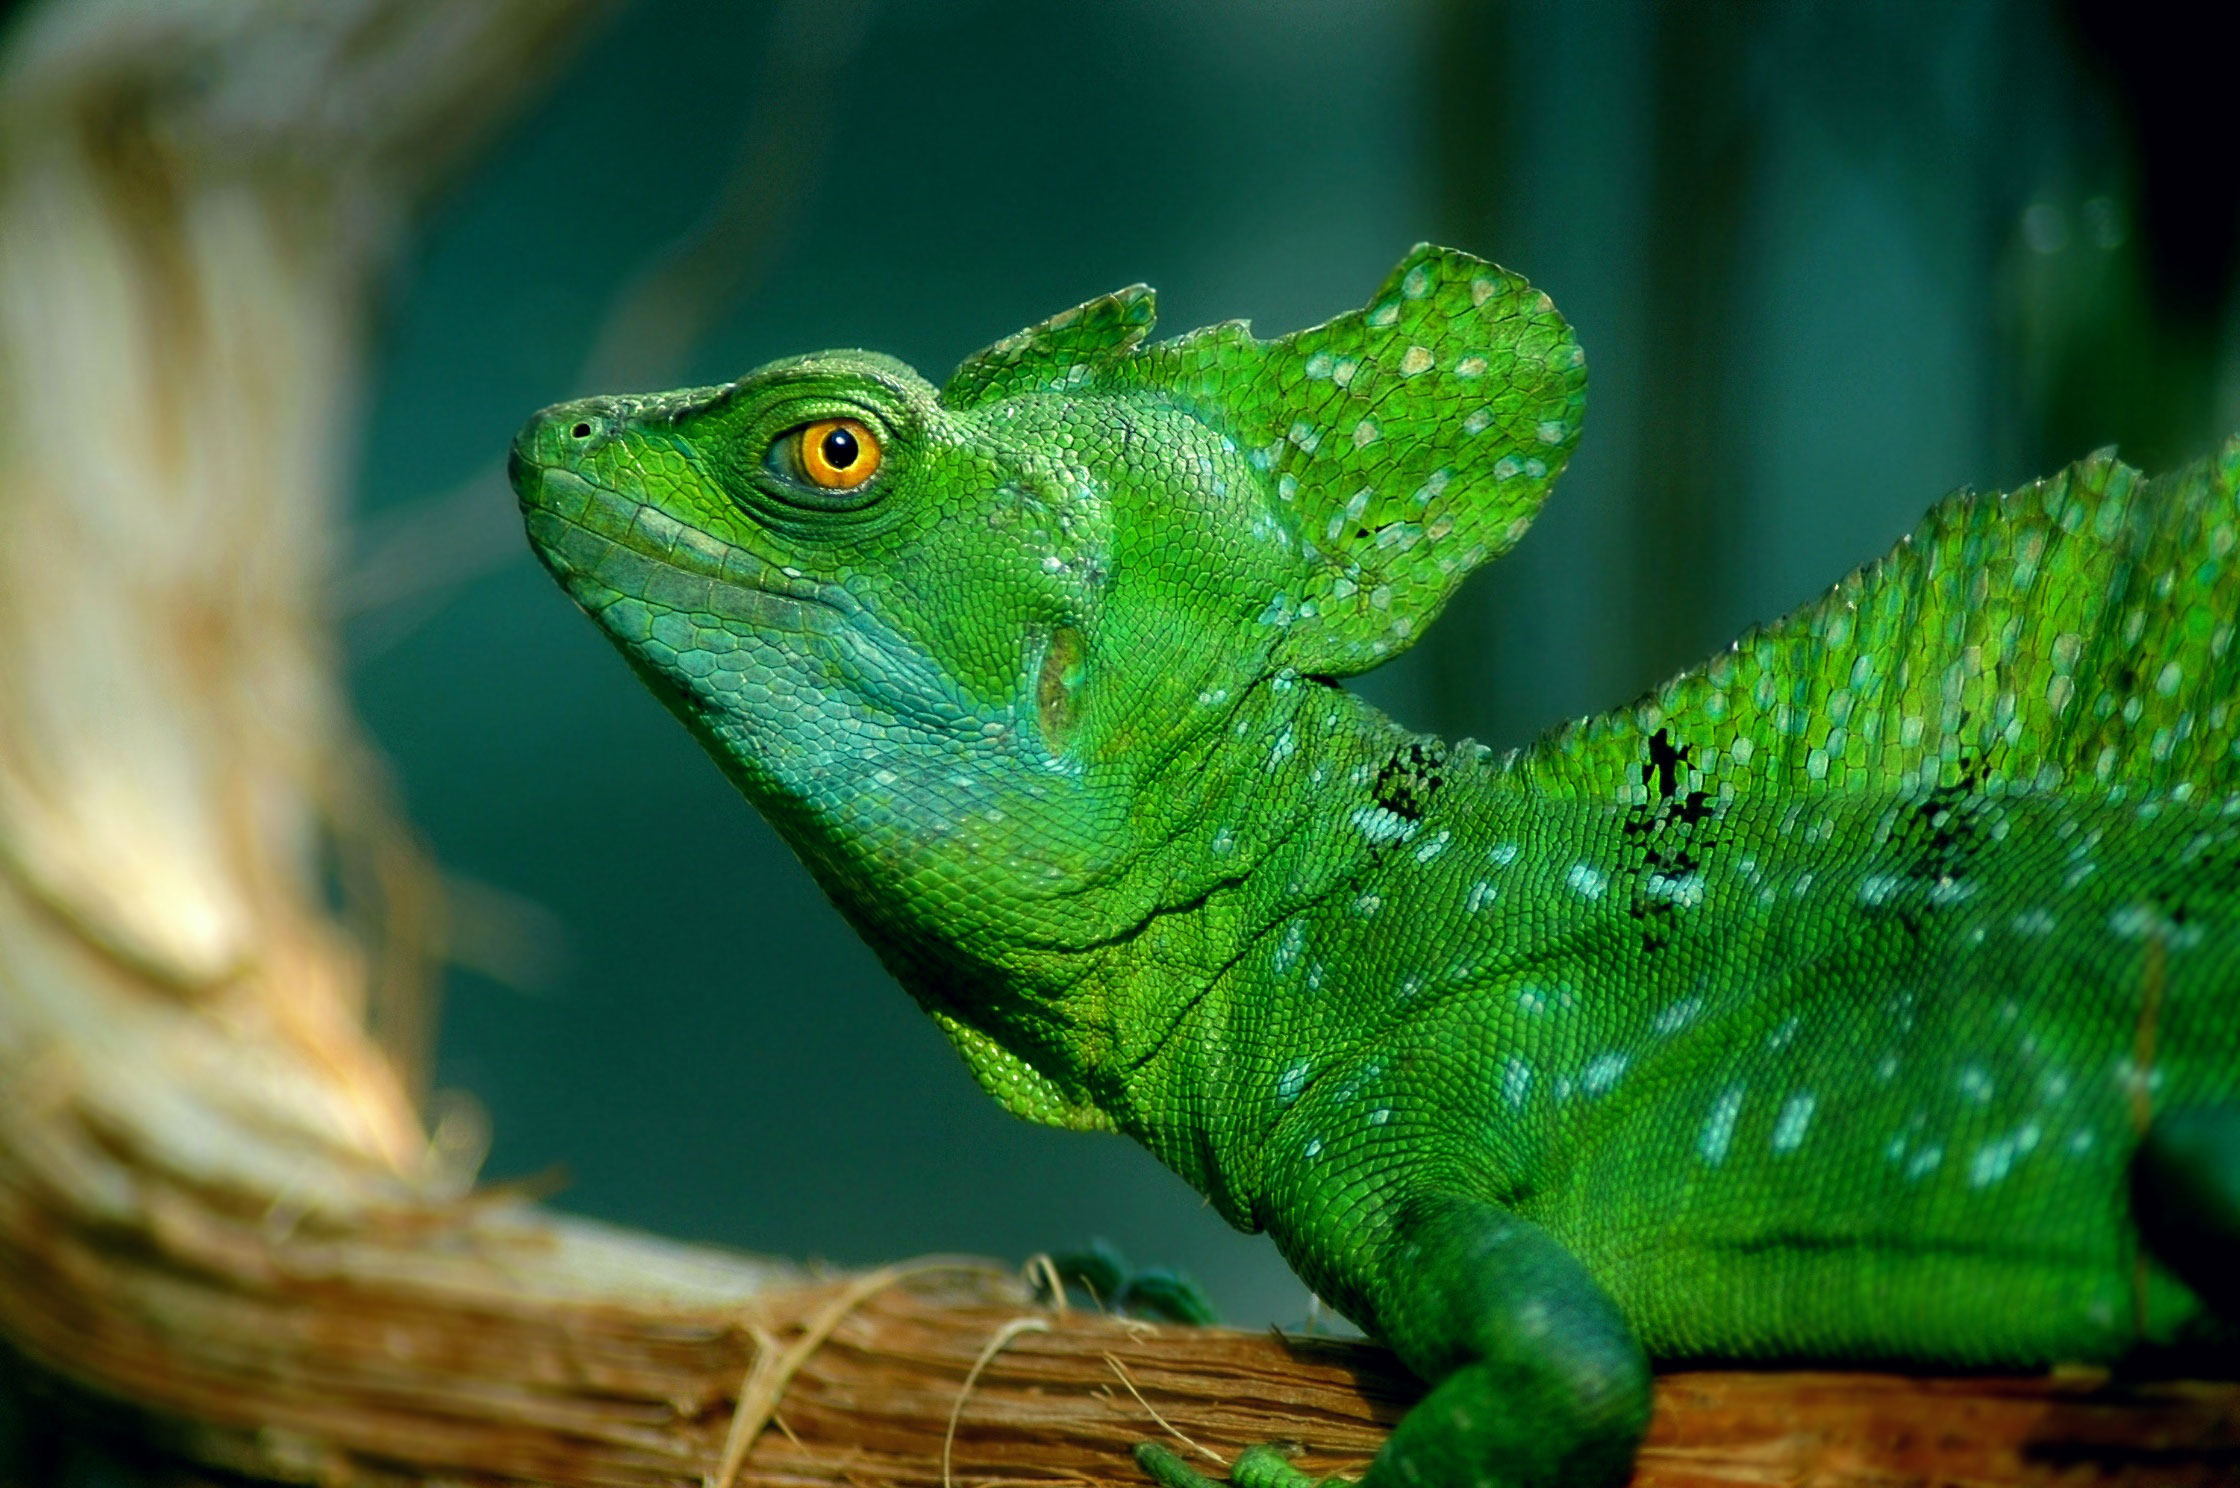 Animal Planet: Green Basilisk Lizard